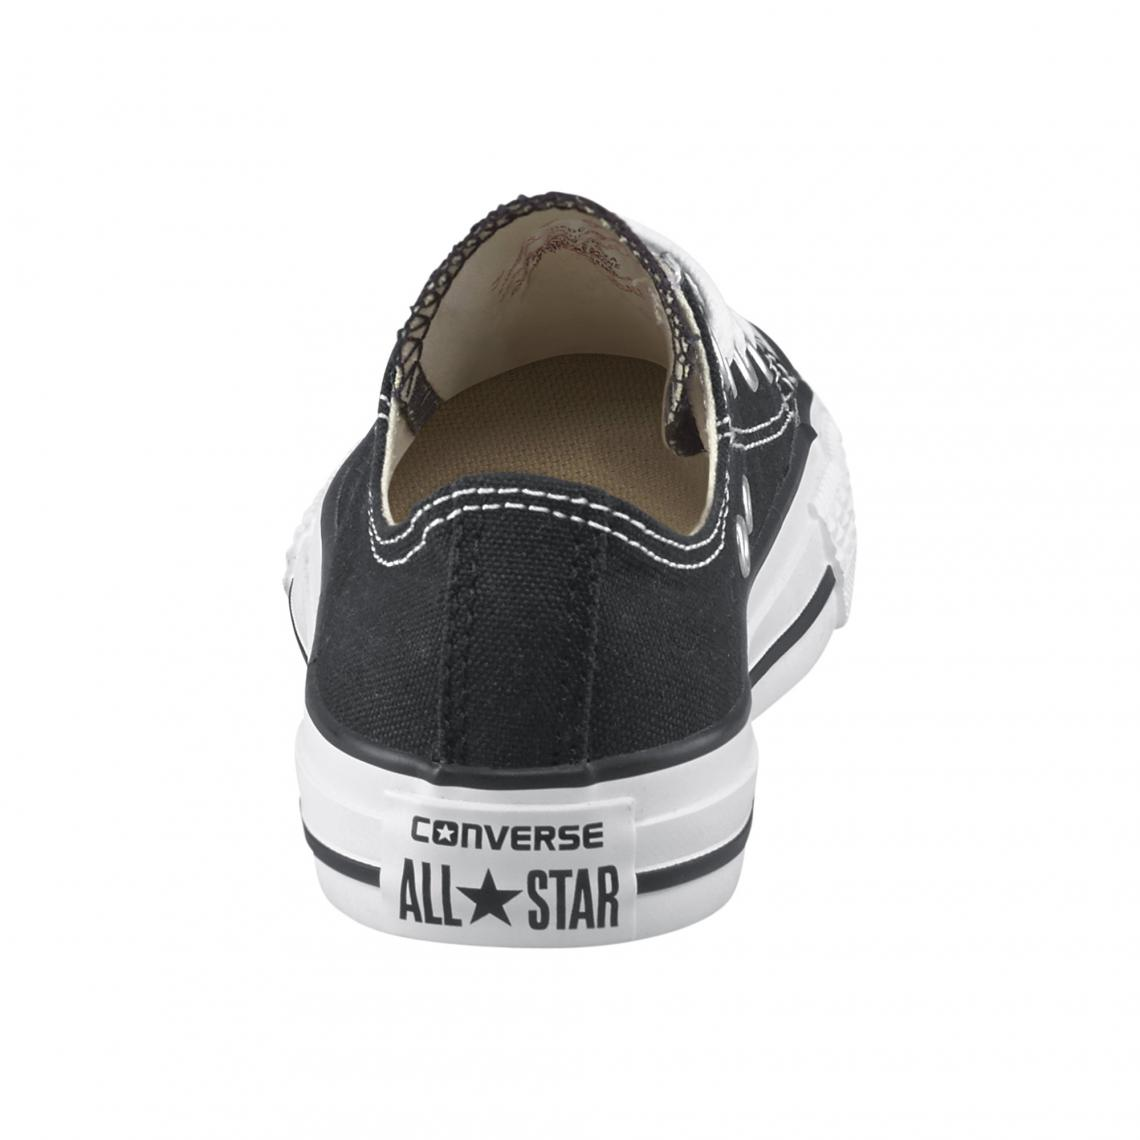 132bfb9614c71 Converse Chuck Taylor All Star baskets basses en toile enfant - Noir  Converse